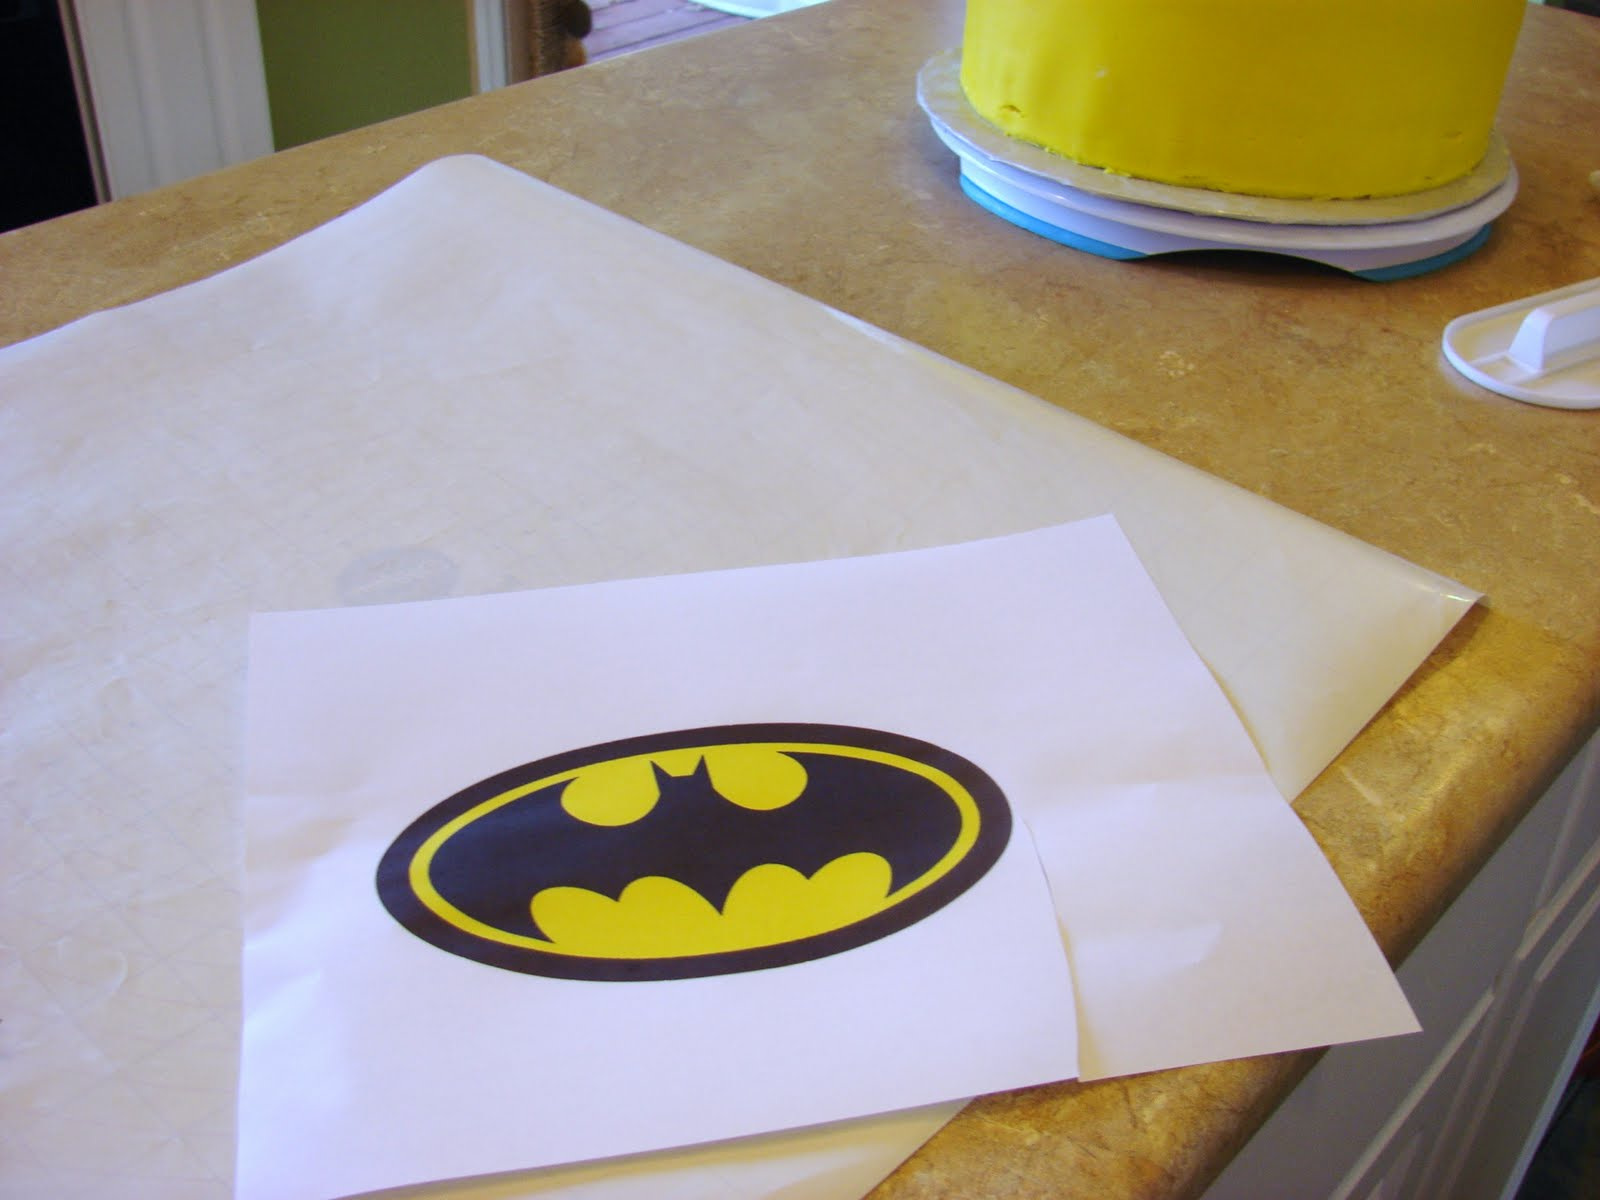 Ipsy Bipsy Bake Shop: Batman........Make Your Own Template